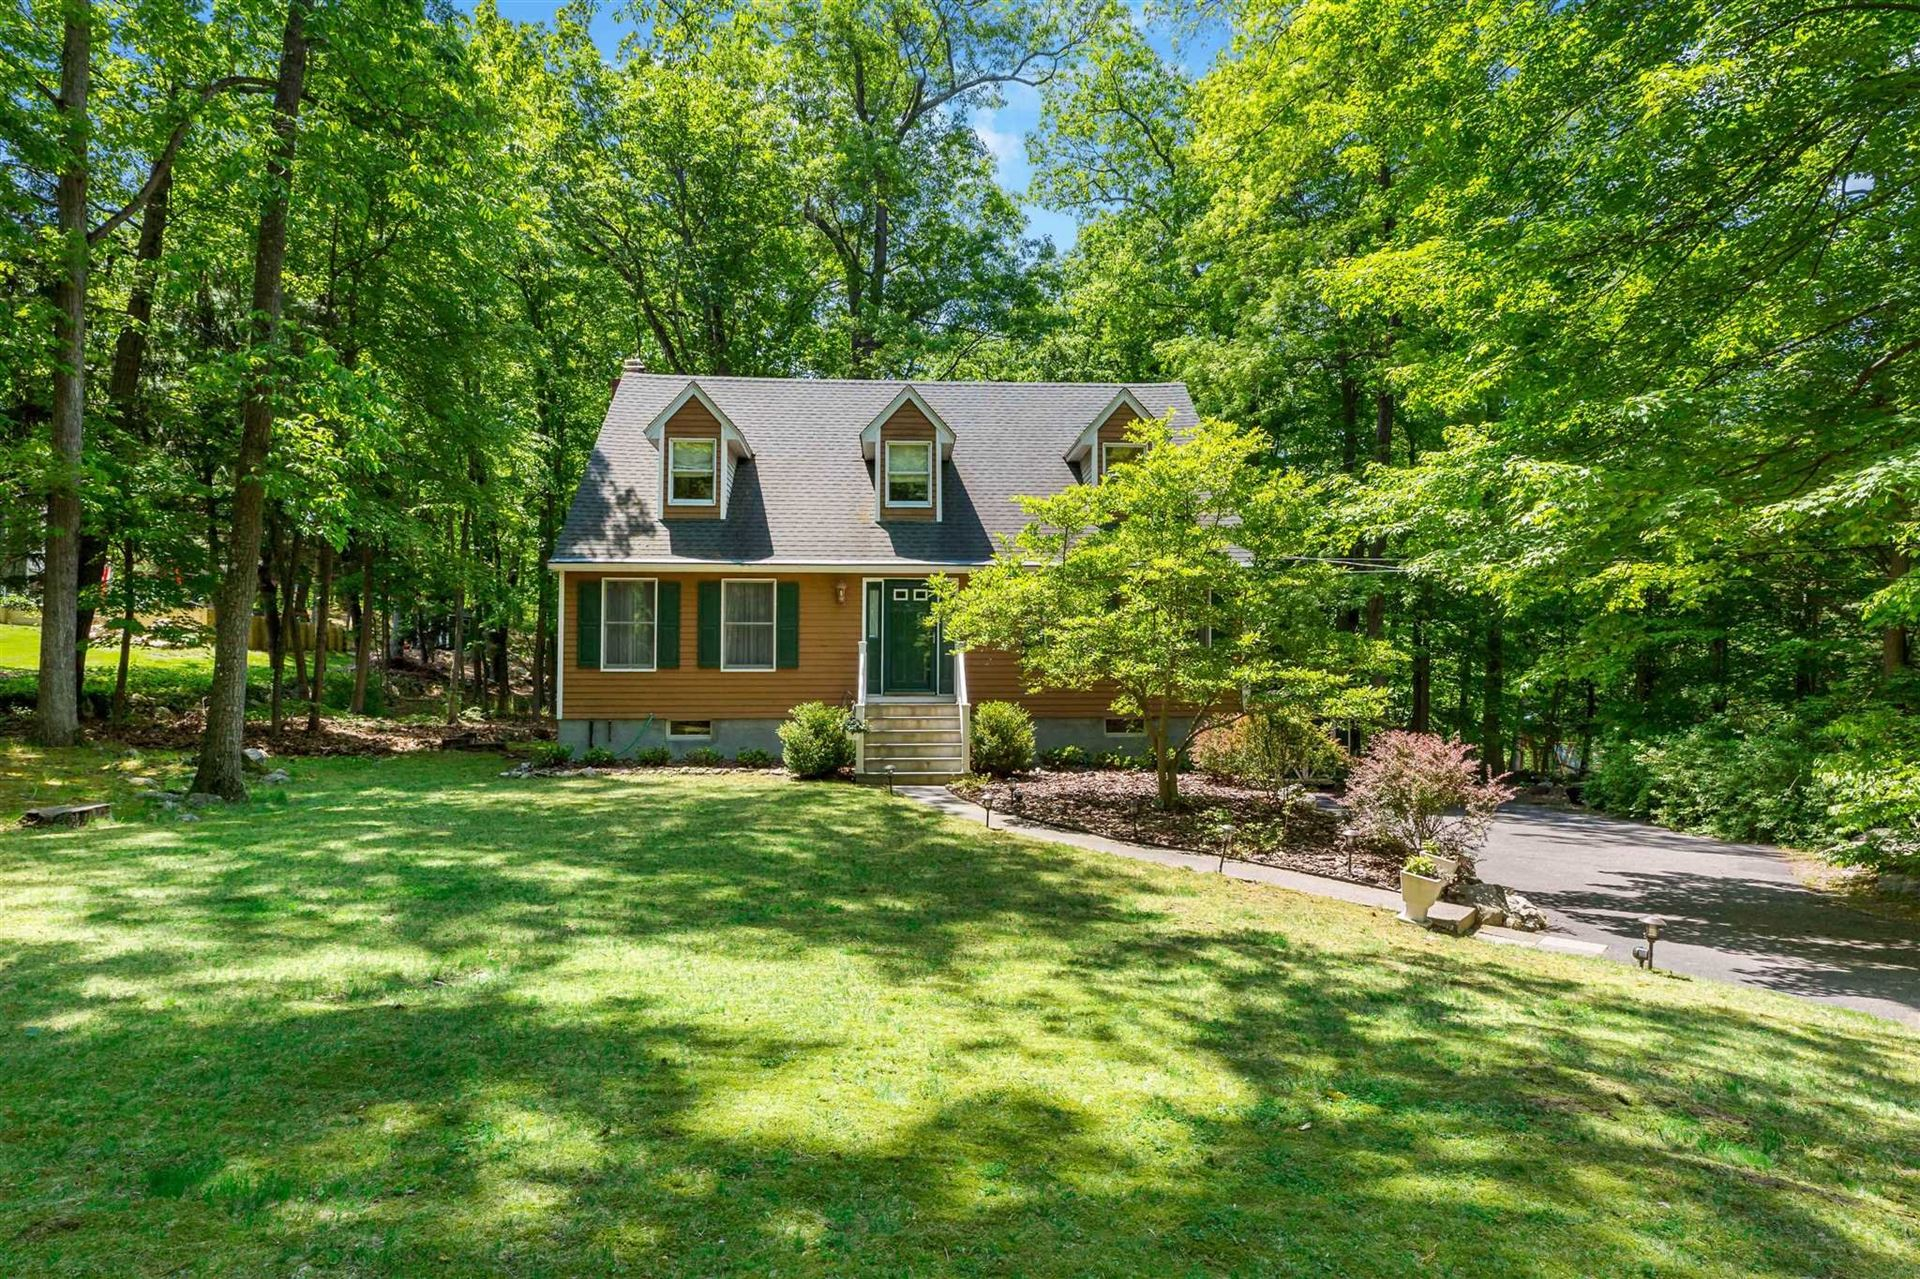 143 EAST MOUNTAIN SOUTH RD, Cold Spring, NY 10516 - #: 401569